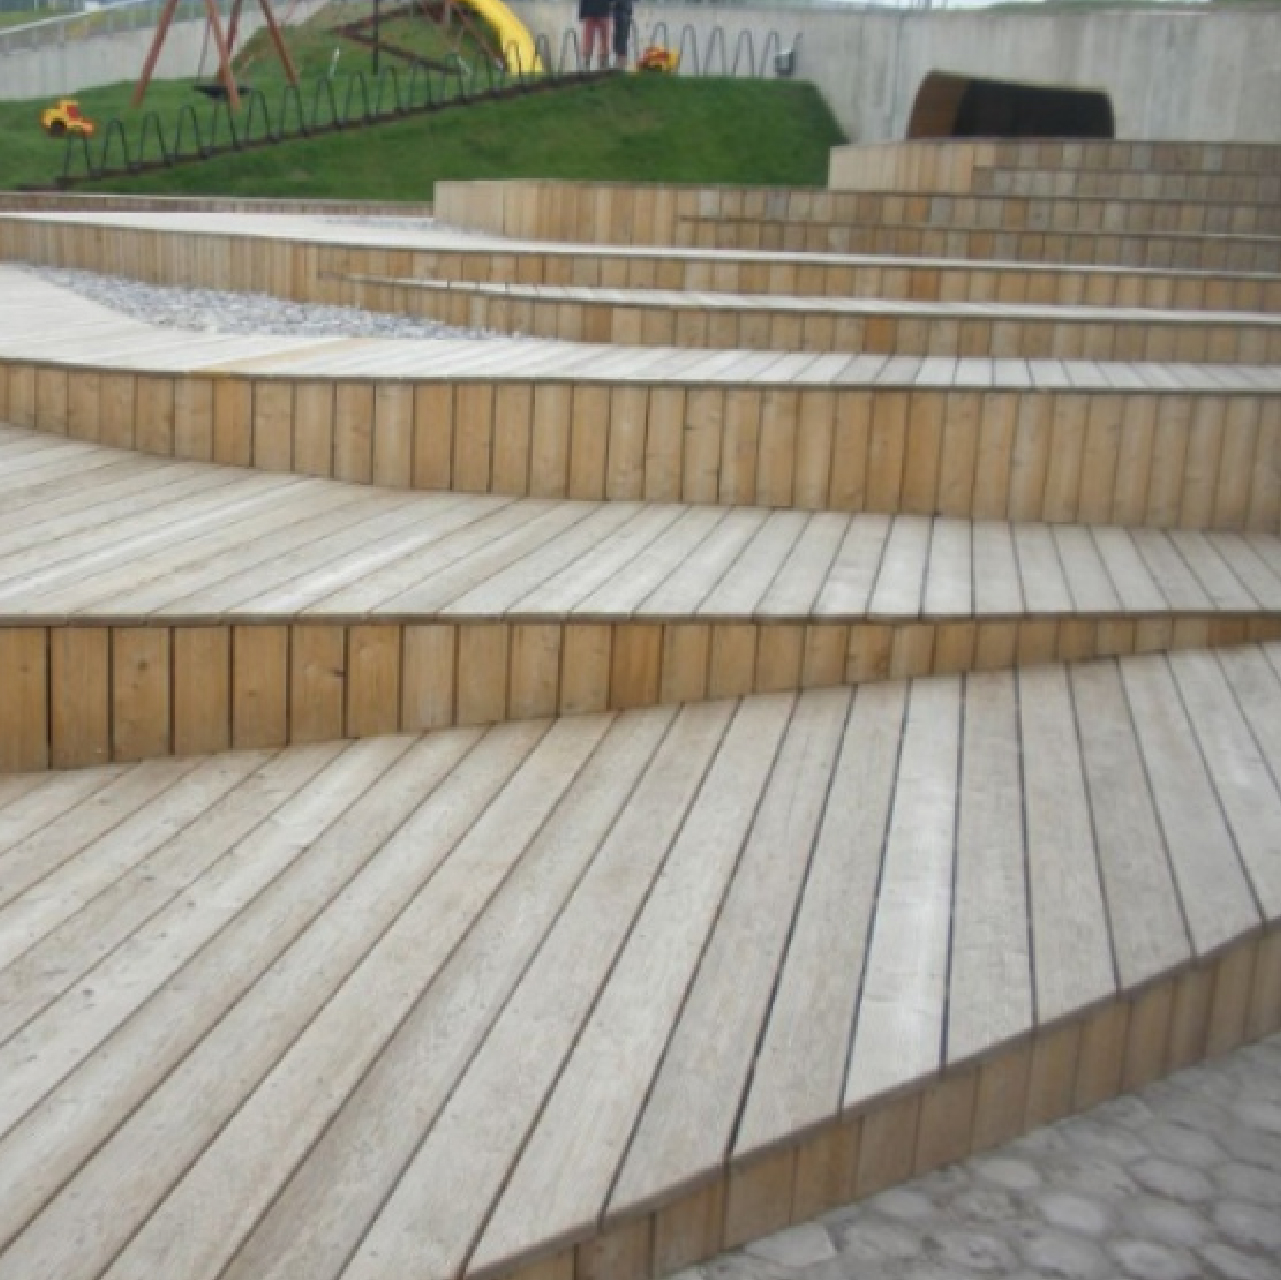 Siberian Larch Smooth both sides Profile 28x145mm For Decking, Cladding or Fencing